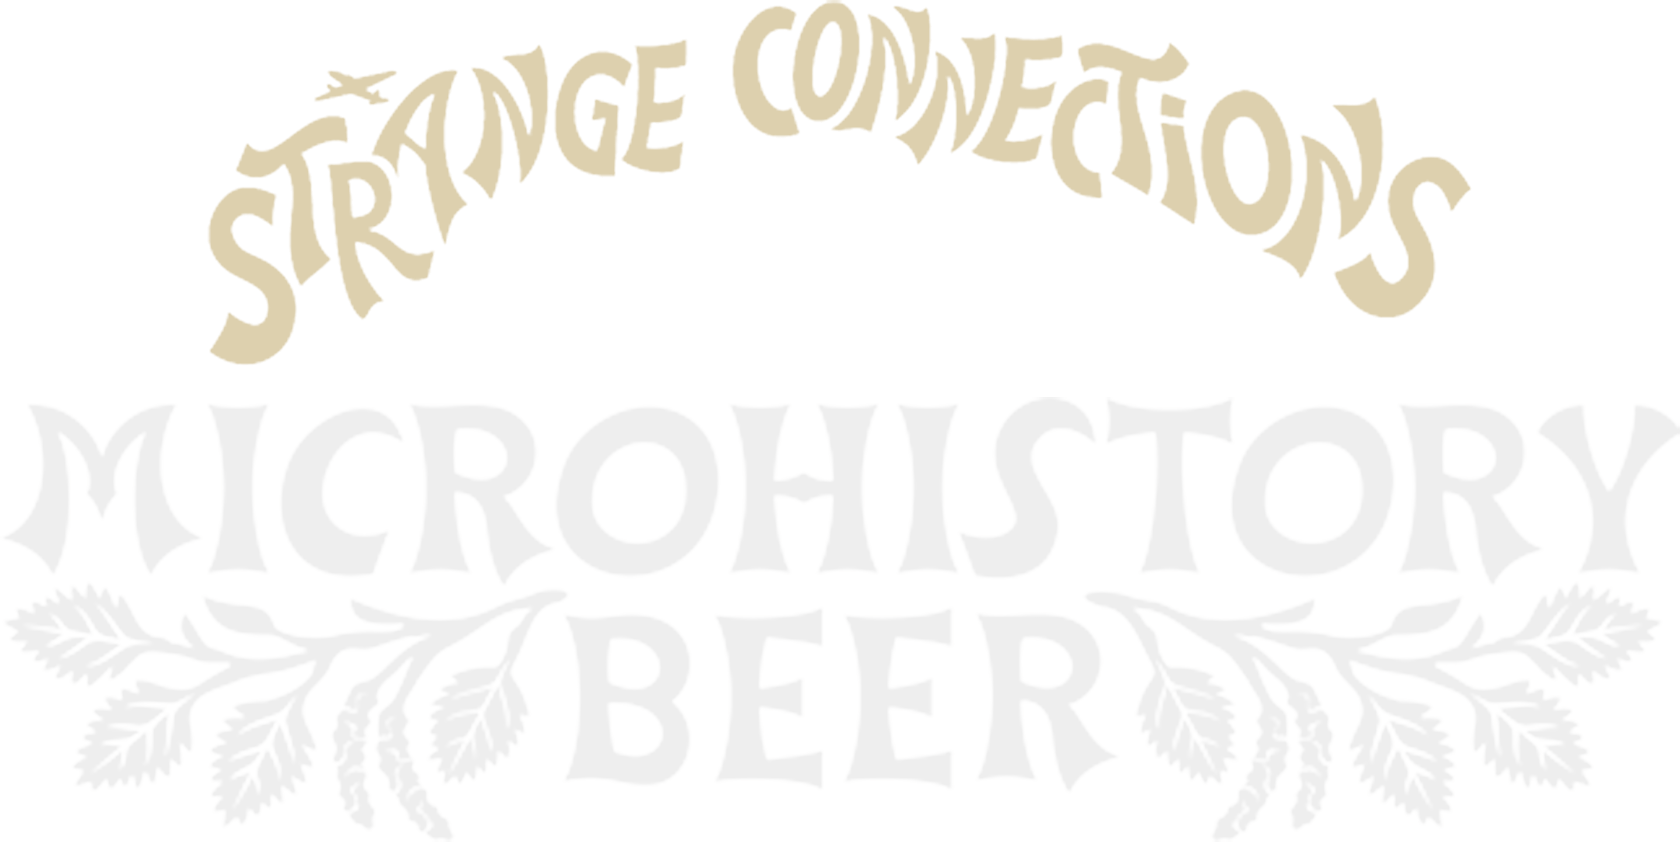 strange-connections-logo-microhistorybeer.com